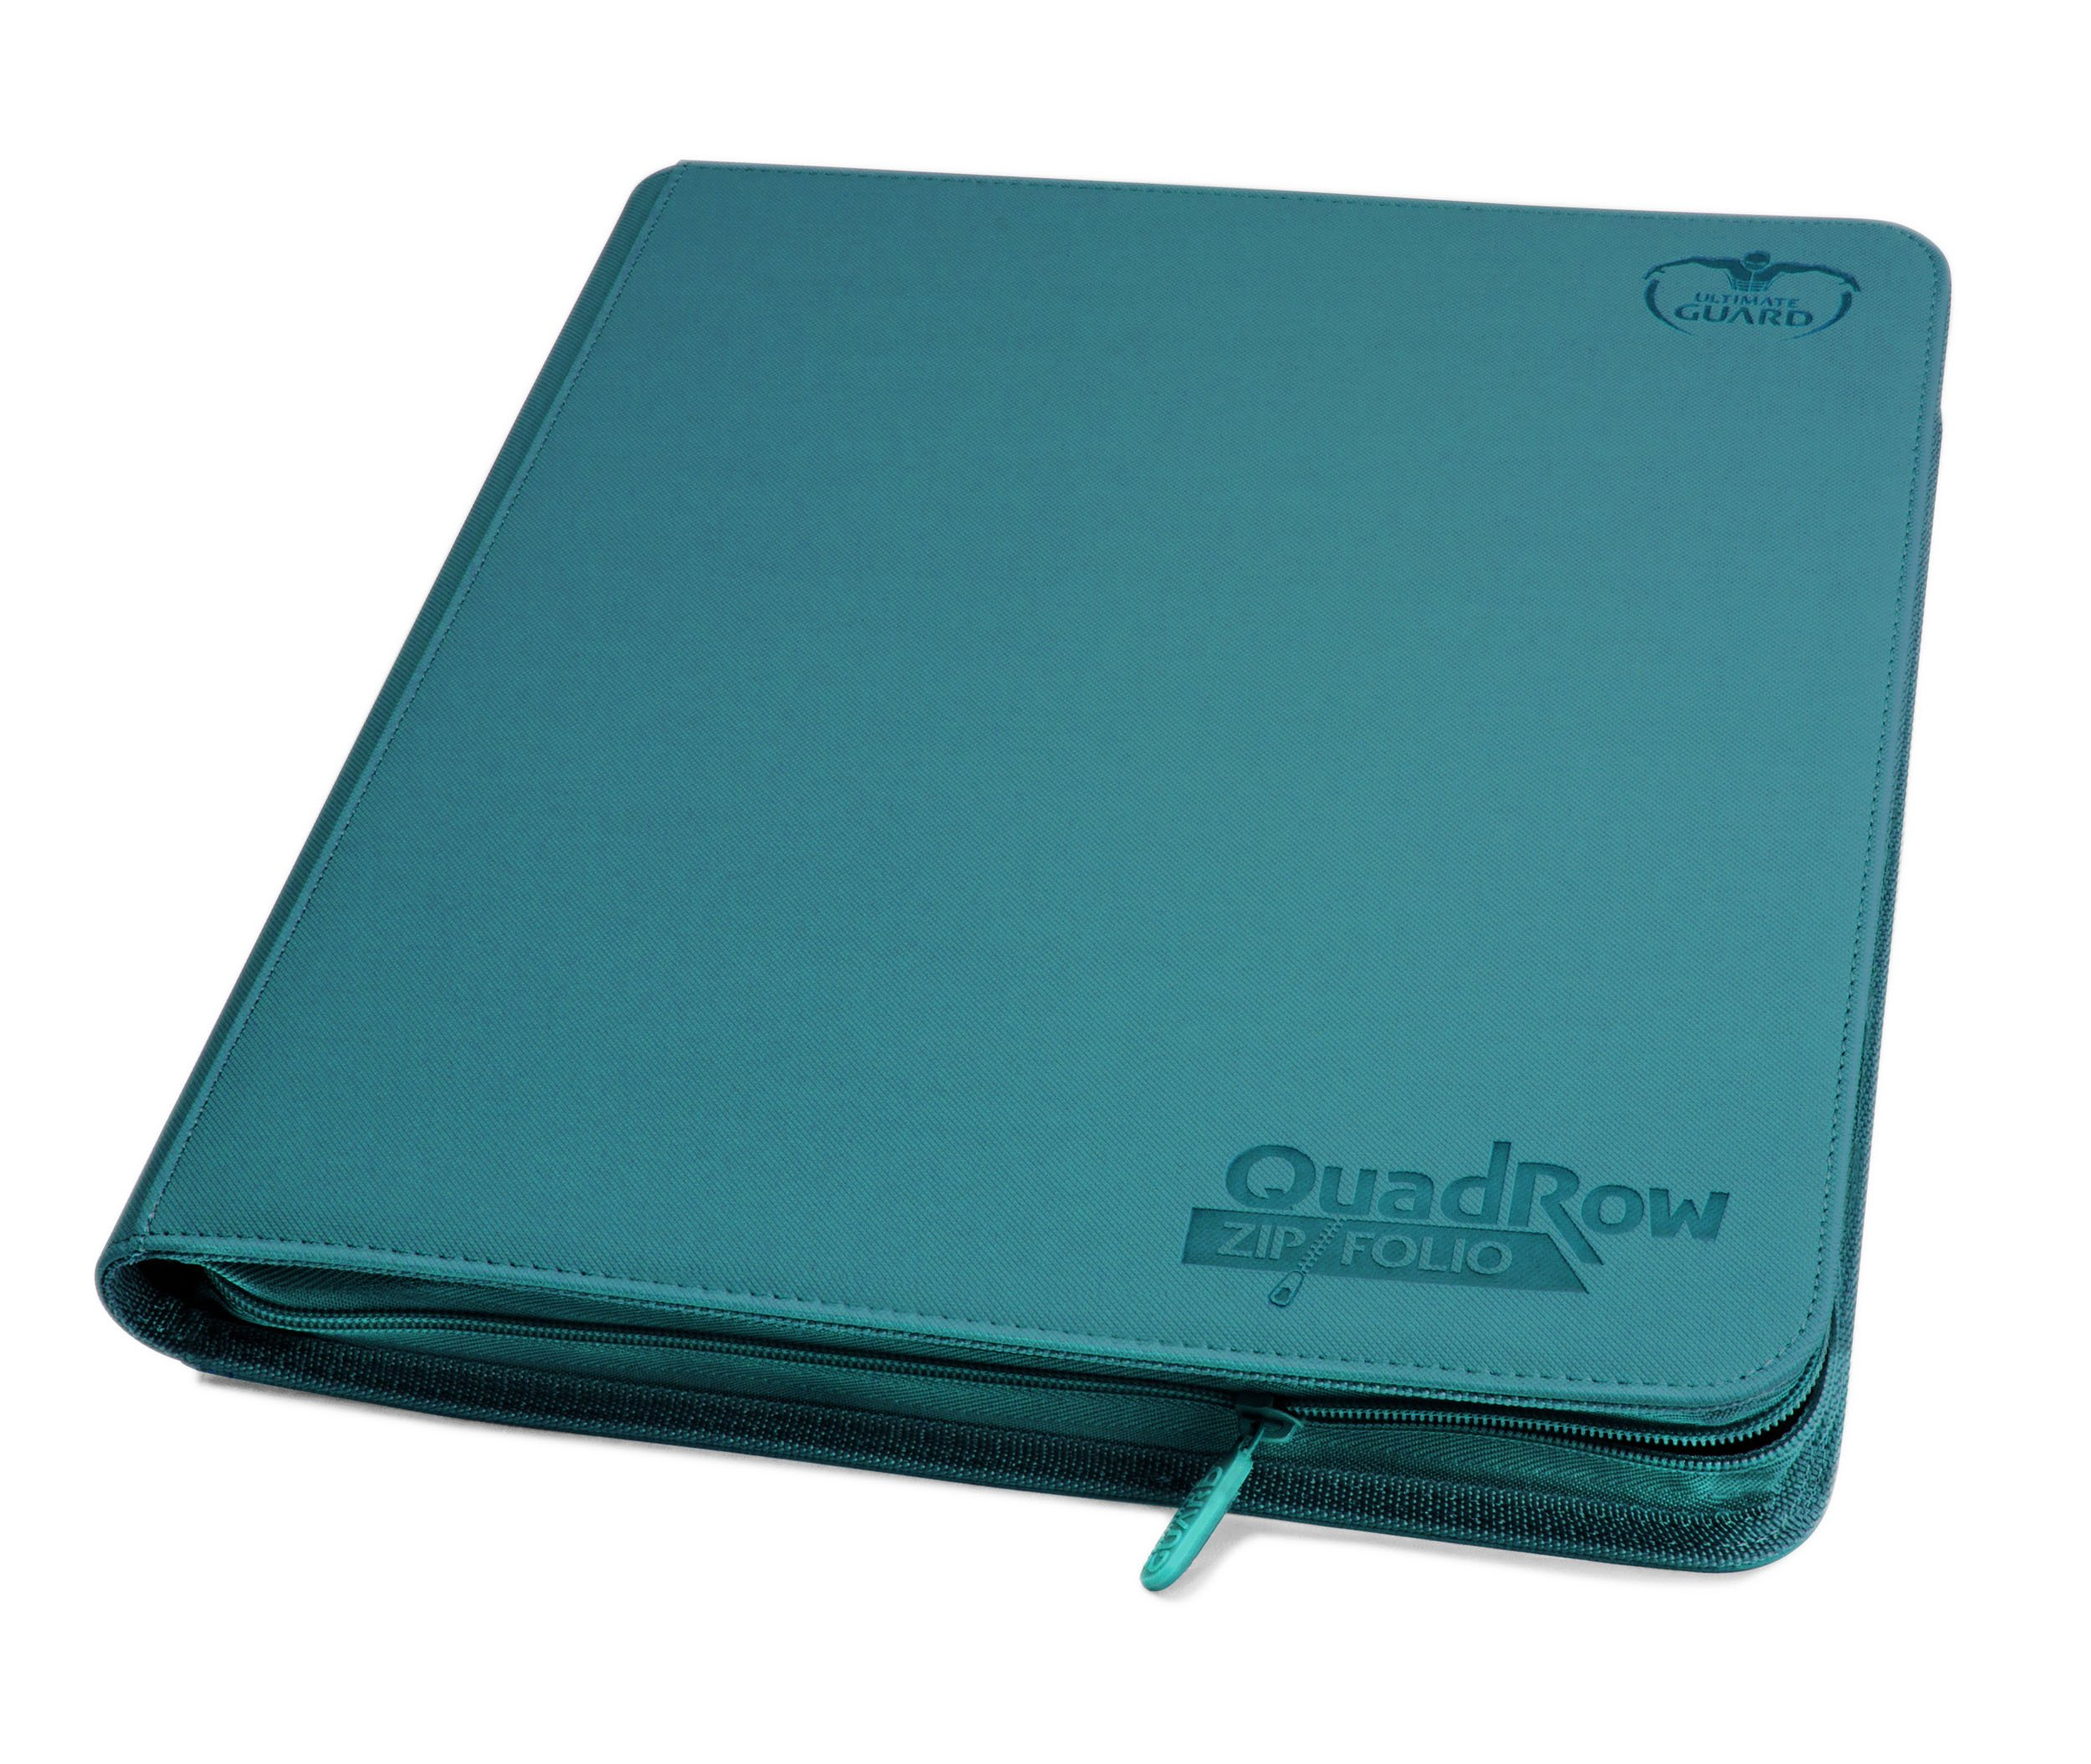 Ultimate Guard Quad Row Zipfolio Xenoskin Card Sleeves, Petrol